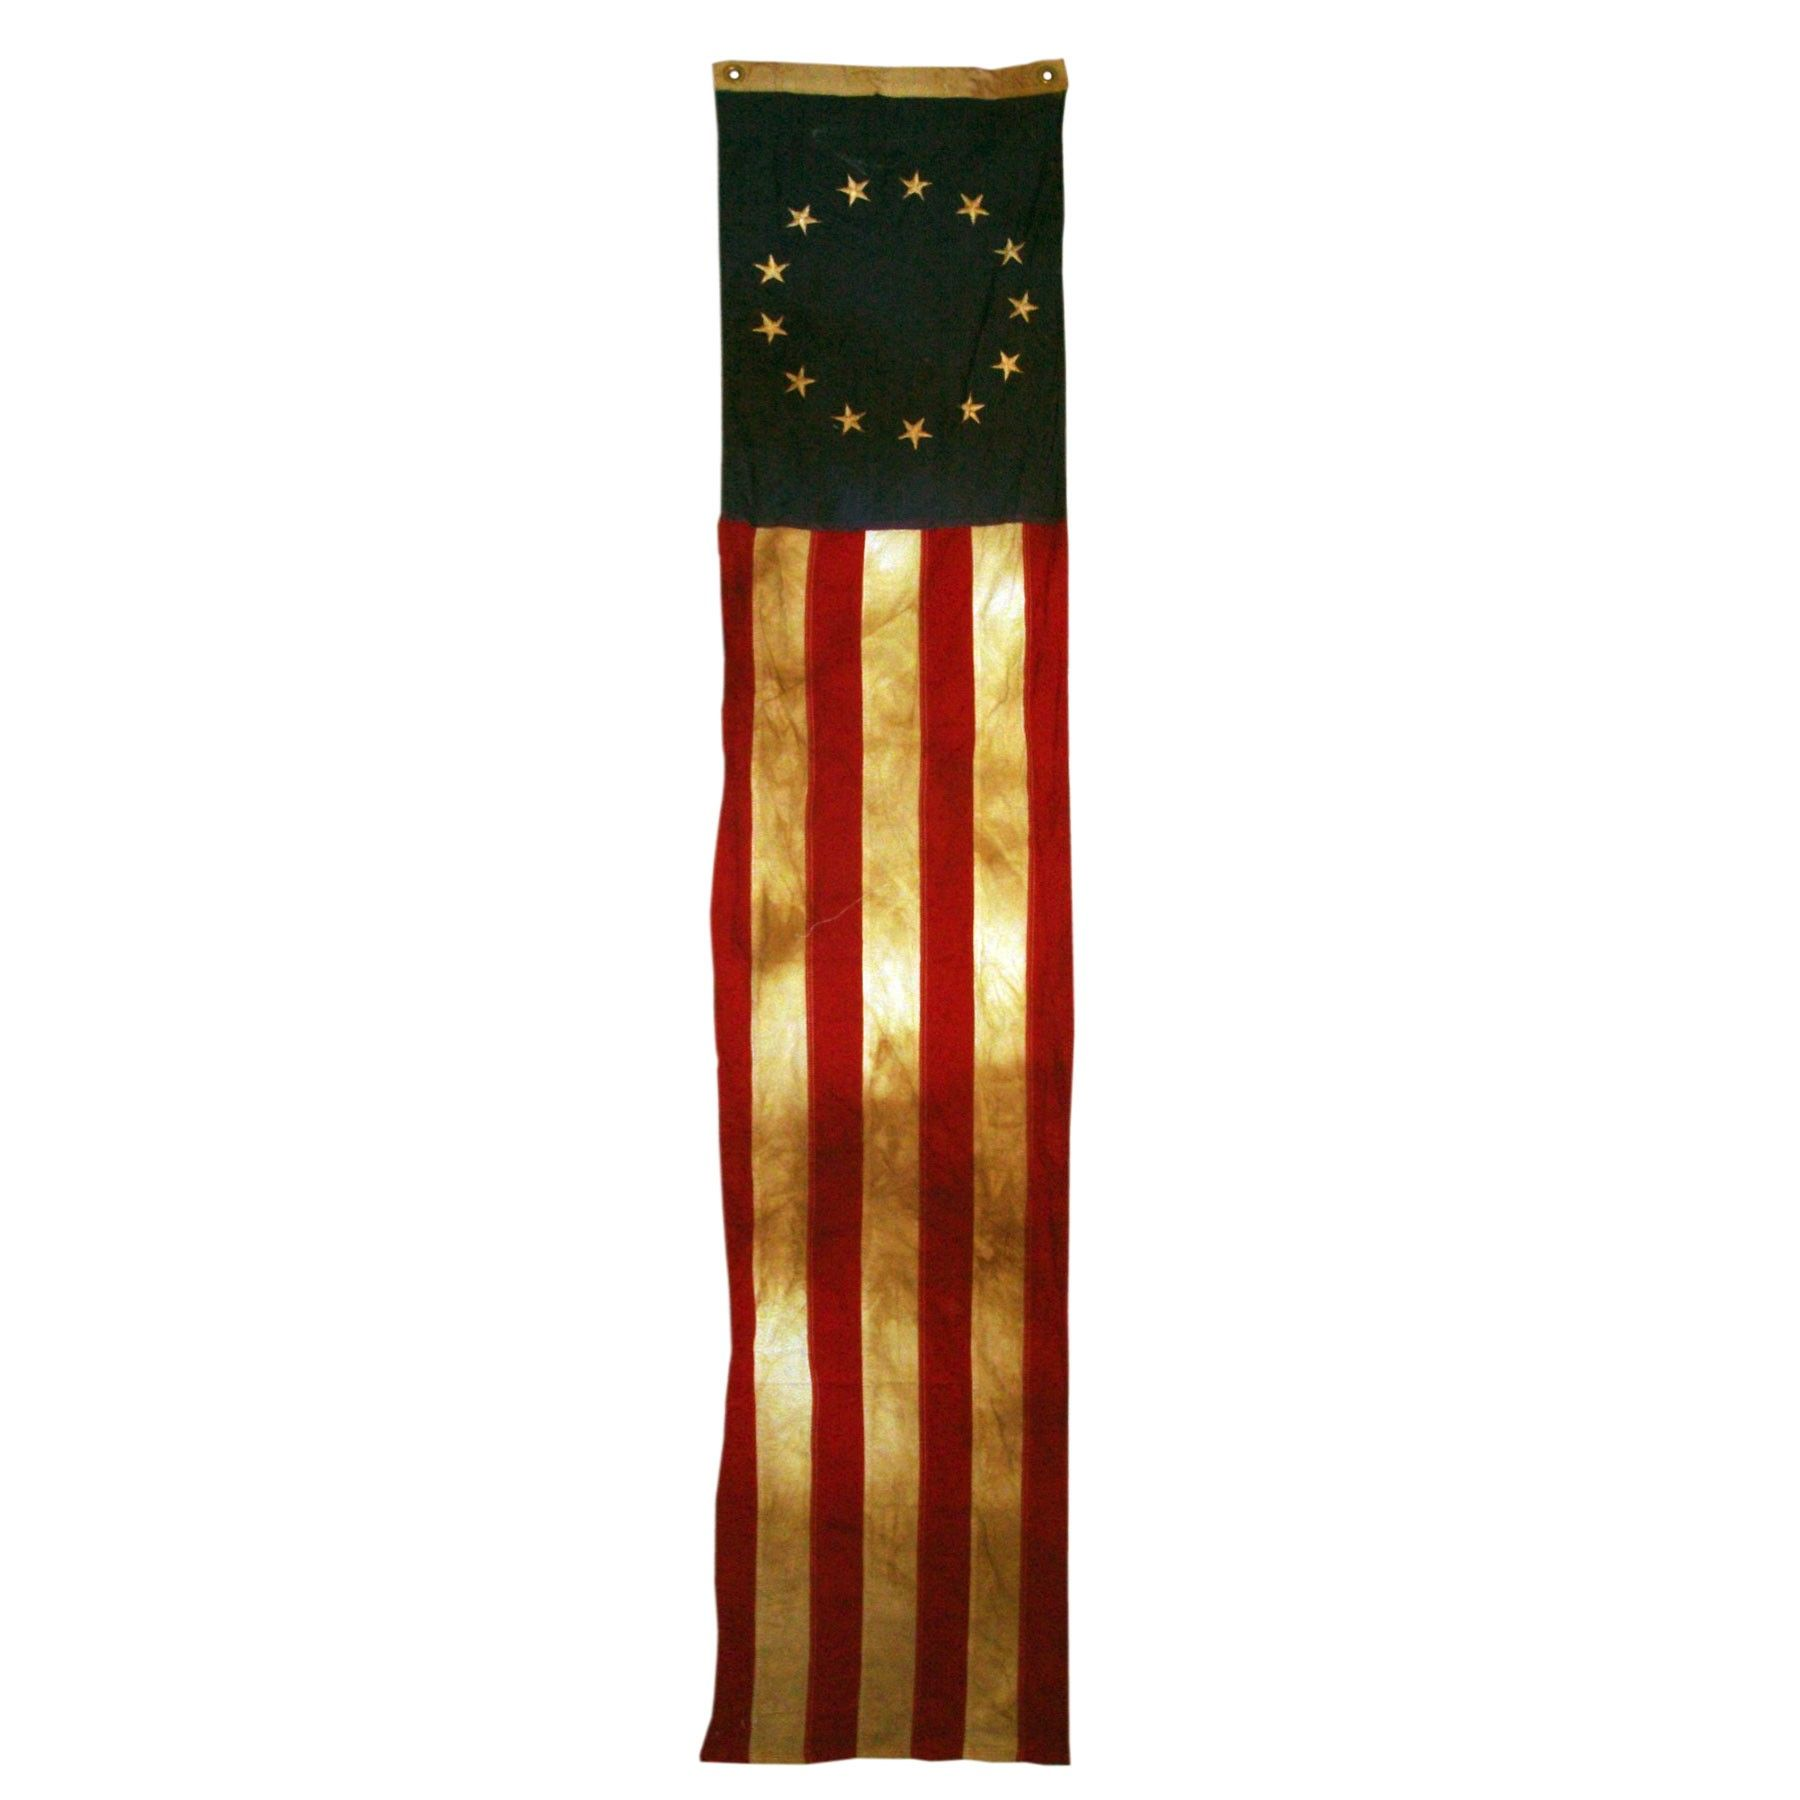 13-Star 20in x 8ft Sewn Cotton Flag Pull Down Heritage Series by Valley Forge